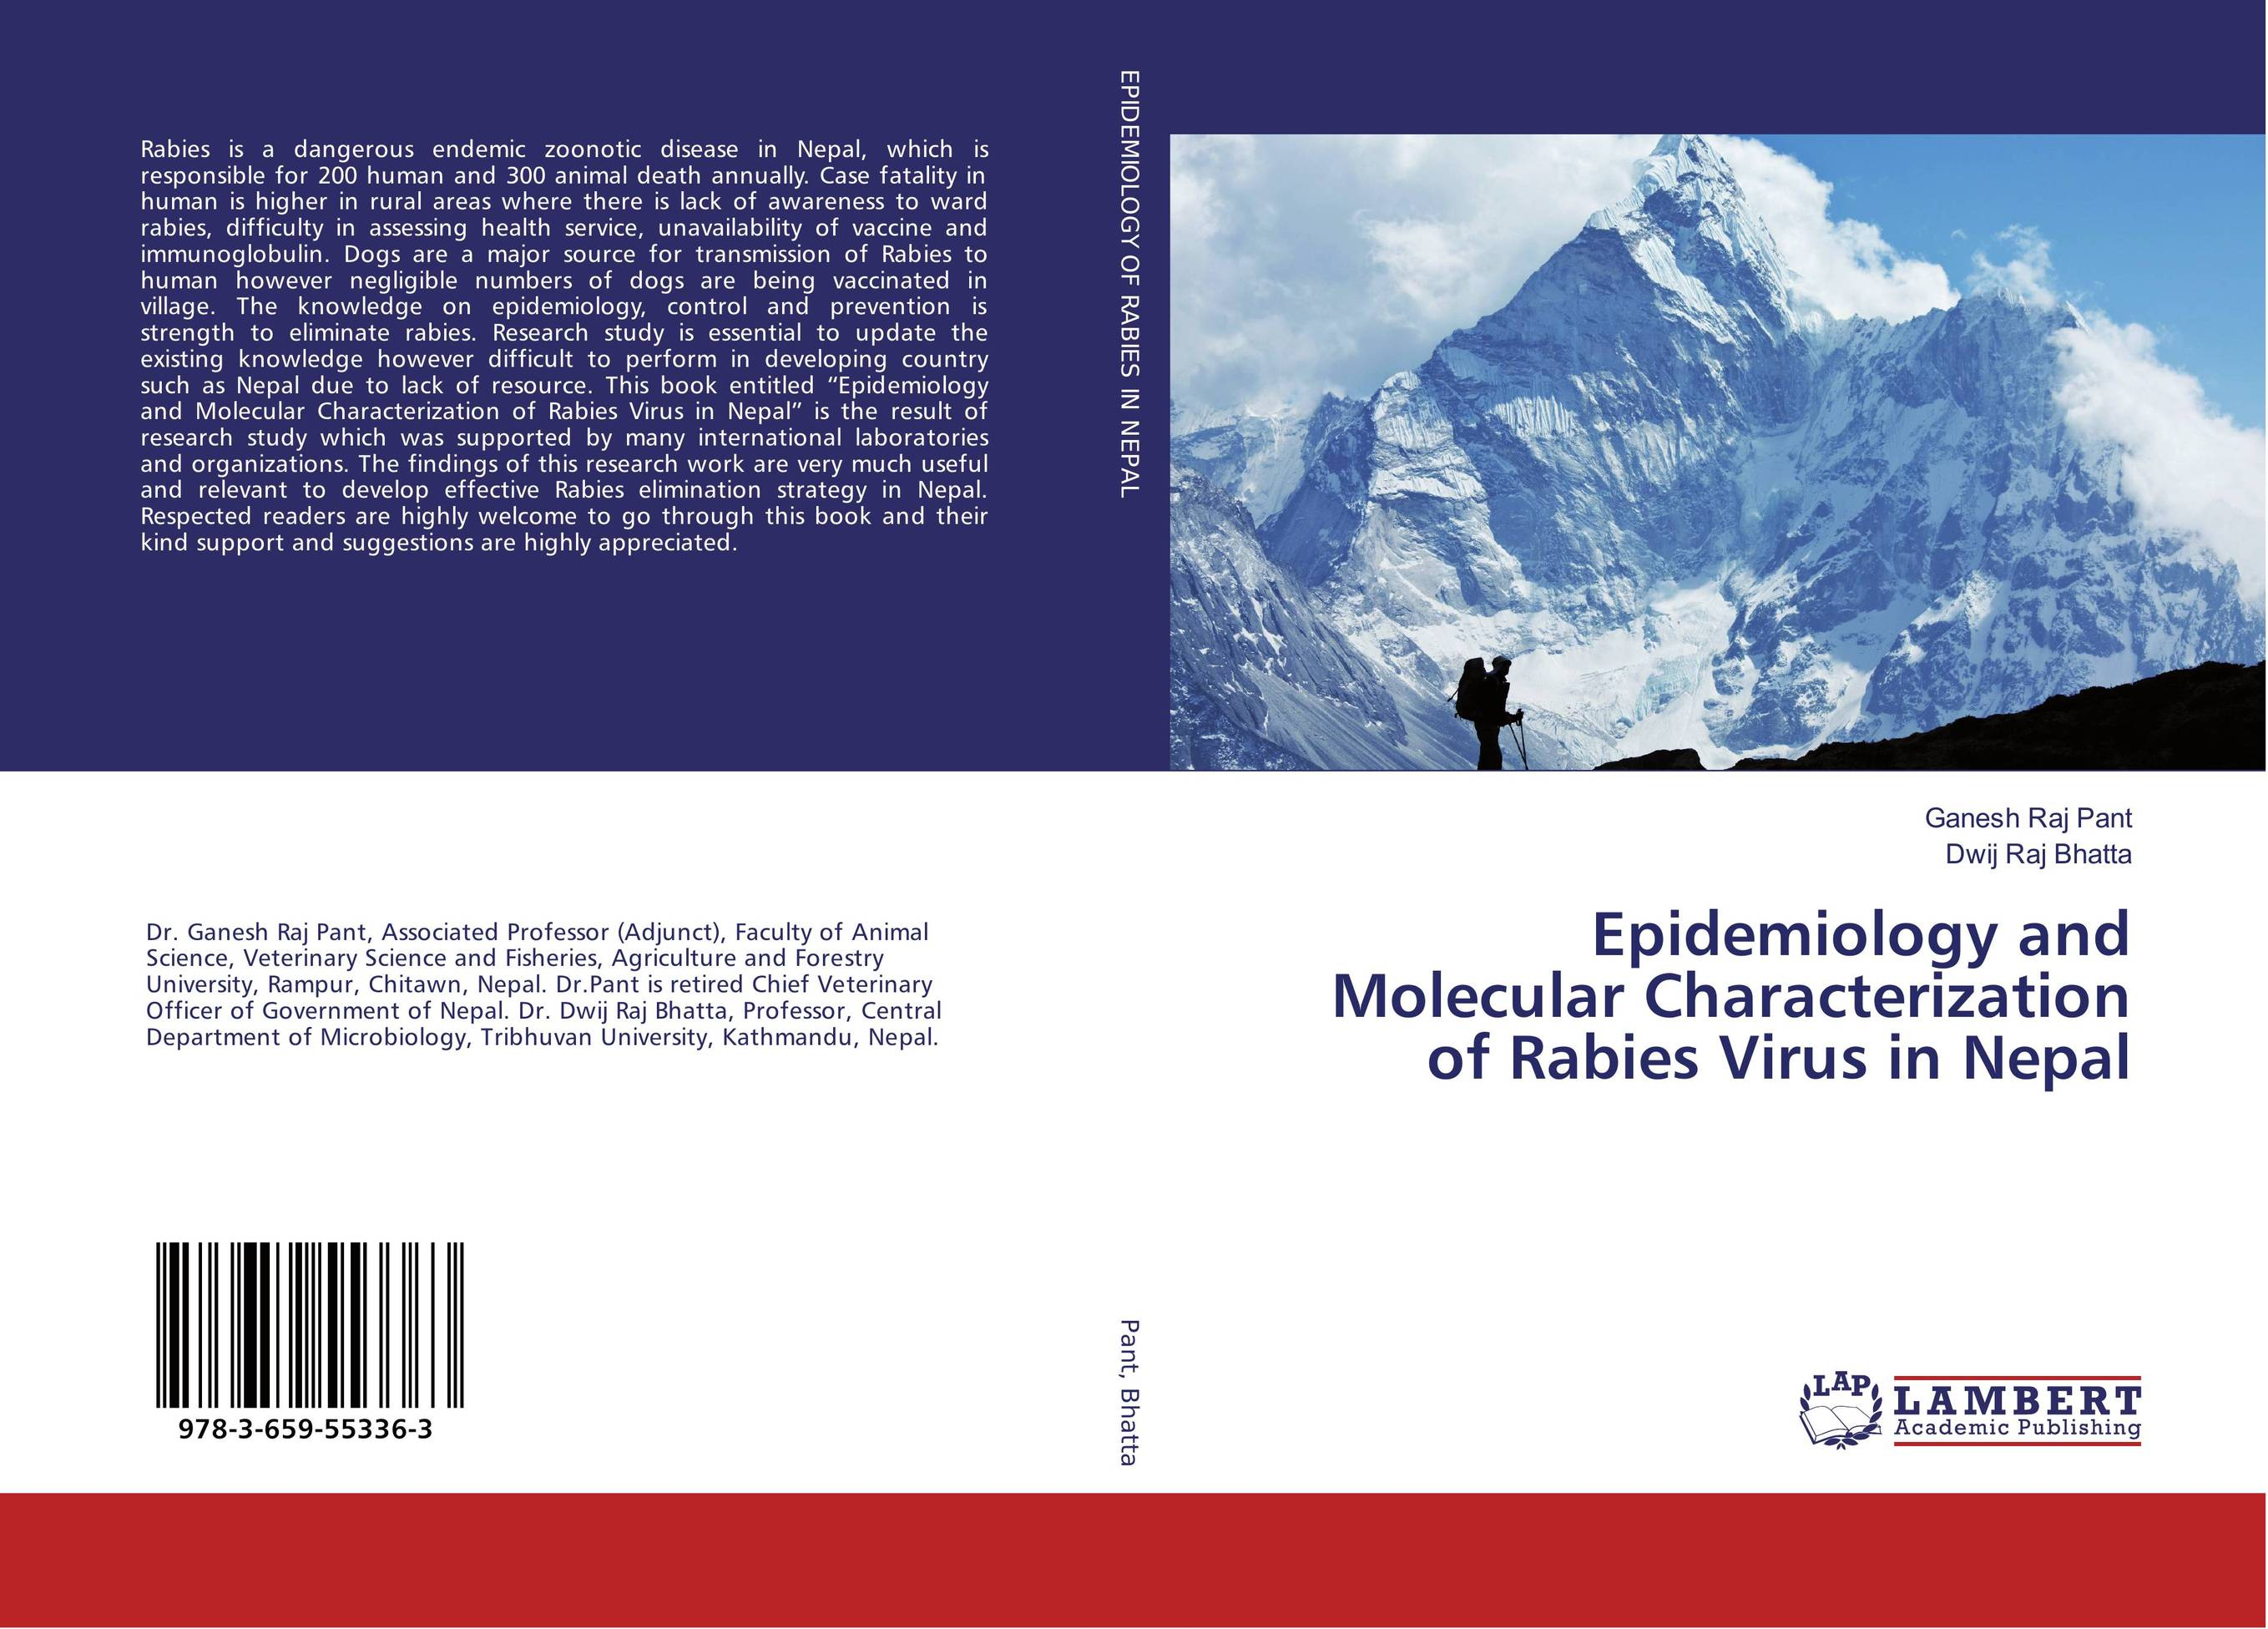 Epidemiology and Molecular Characterization of Rabies Virus in Nepal anil arjun hake sanjay jha and suman kumar jha molecular and biochemical characterization of karanja derris indica